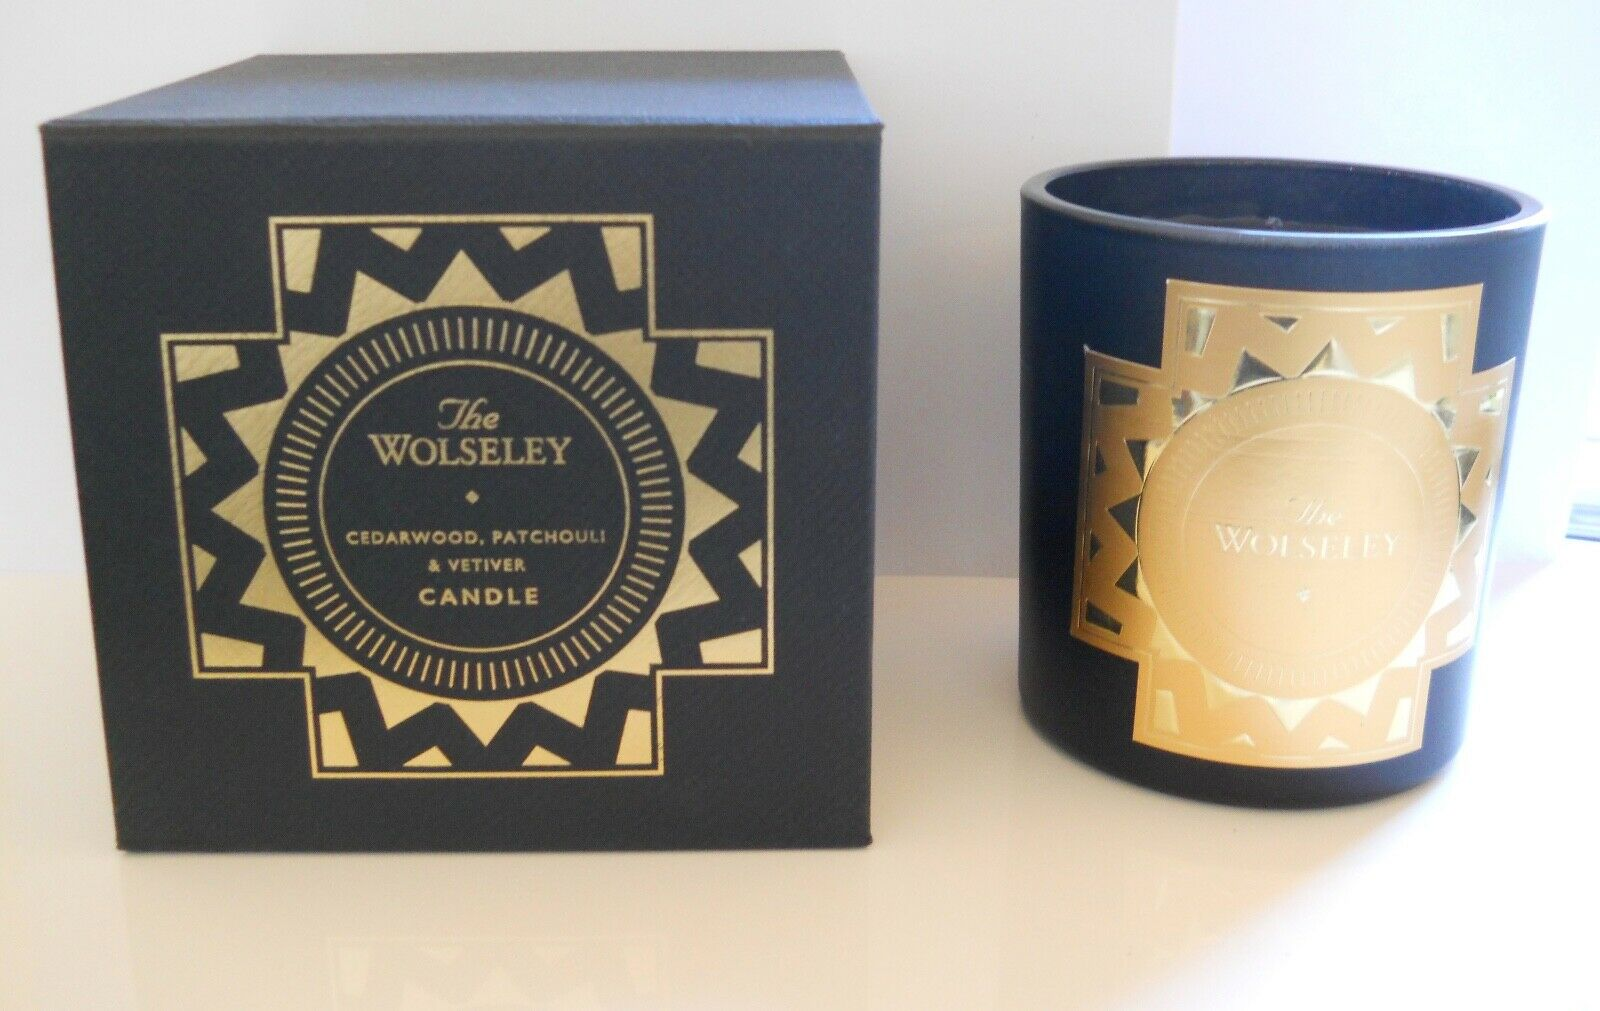 BNIB The Wolseley Scented Candle 400g   Cedarwood Vetiver Patchouli